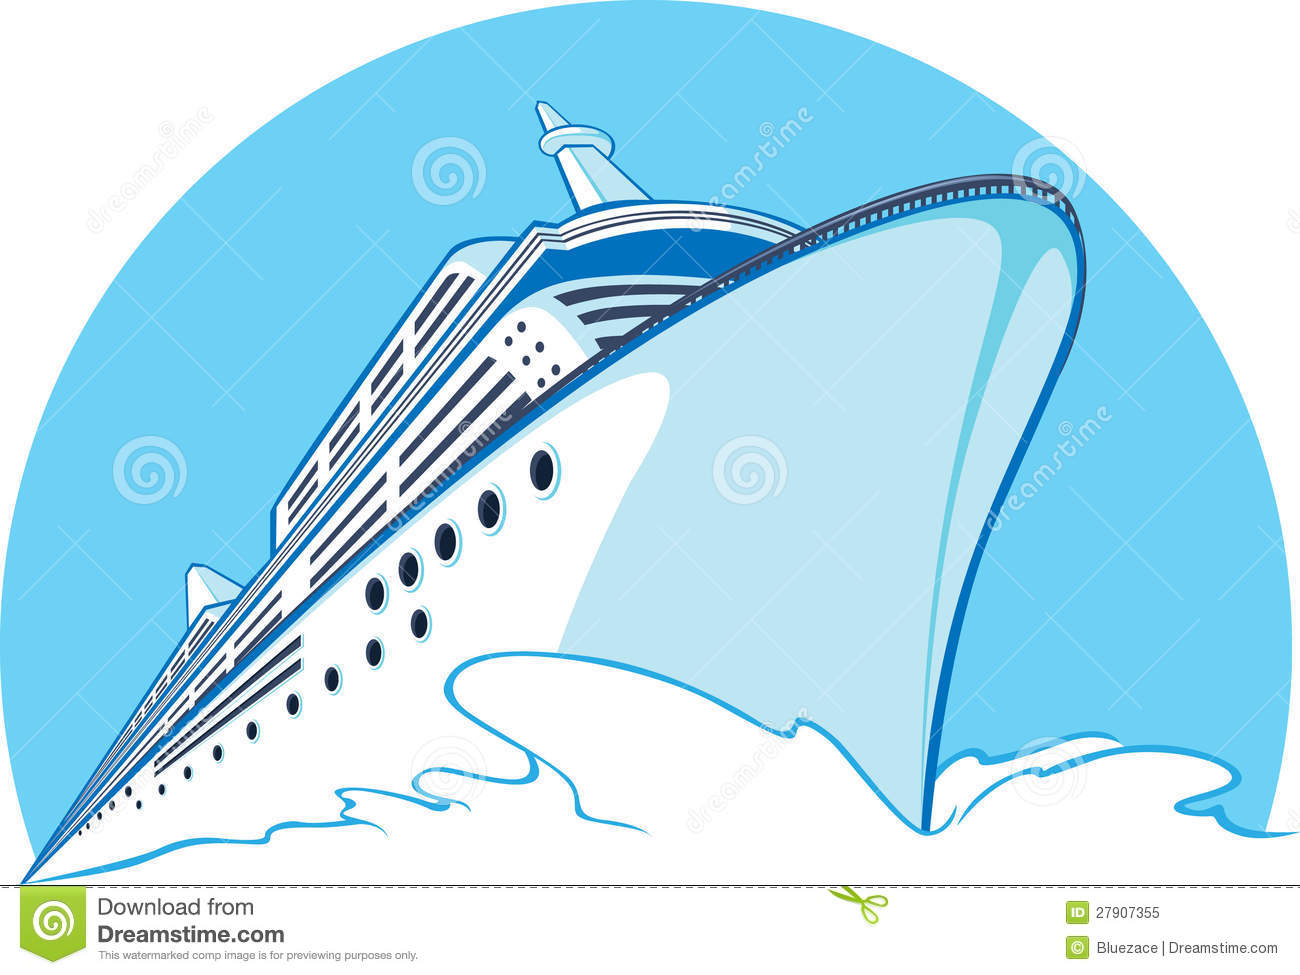 Animated Cruise Ship Clipart.